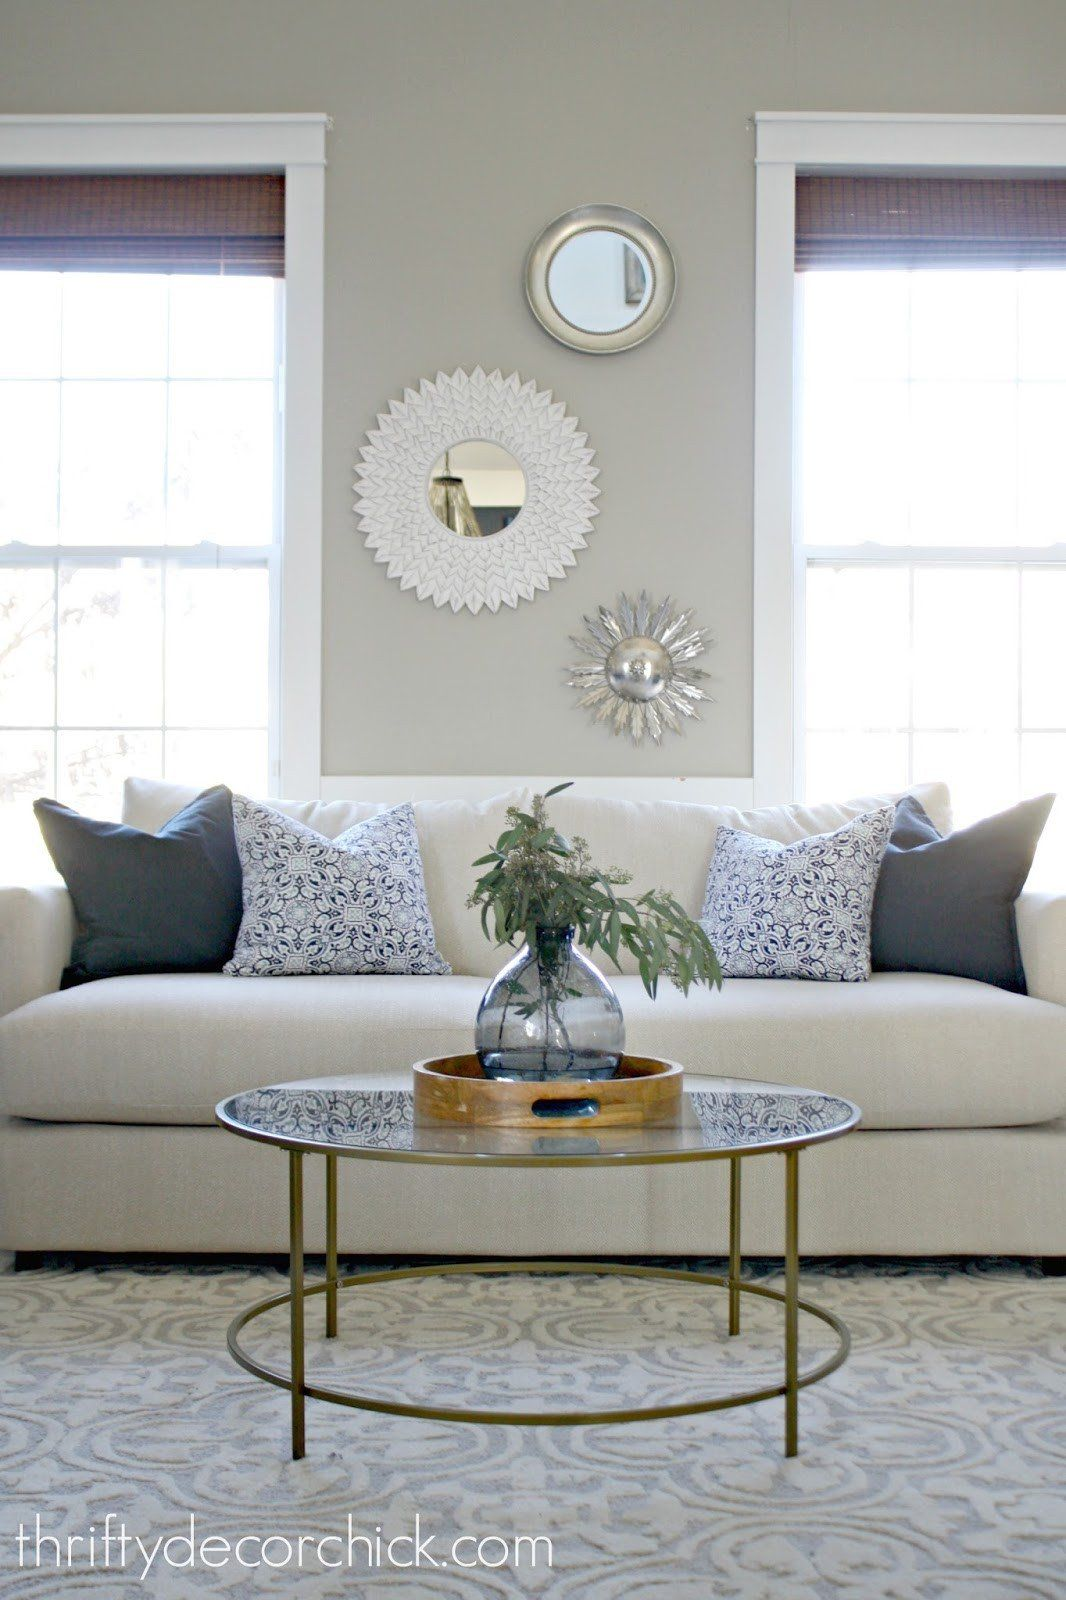 Round Coffee Table Decor Ideas Best Of When In Doubt Add Some Circles From Thrifty De In 2020 Table Decor Living Room Round Coffee Table Decor Glass Coffee Table Decor